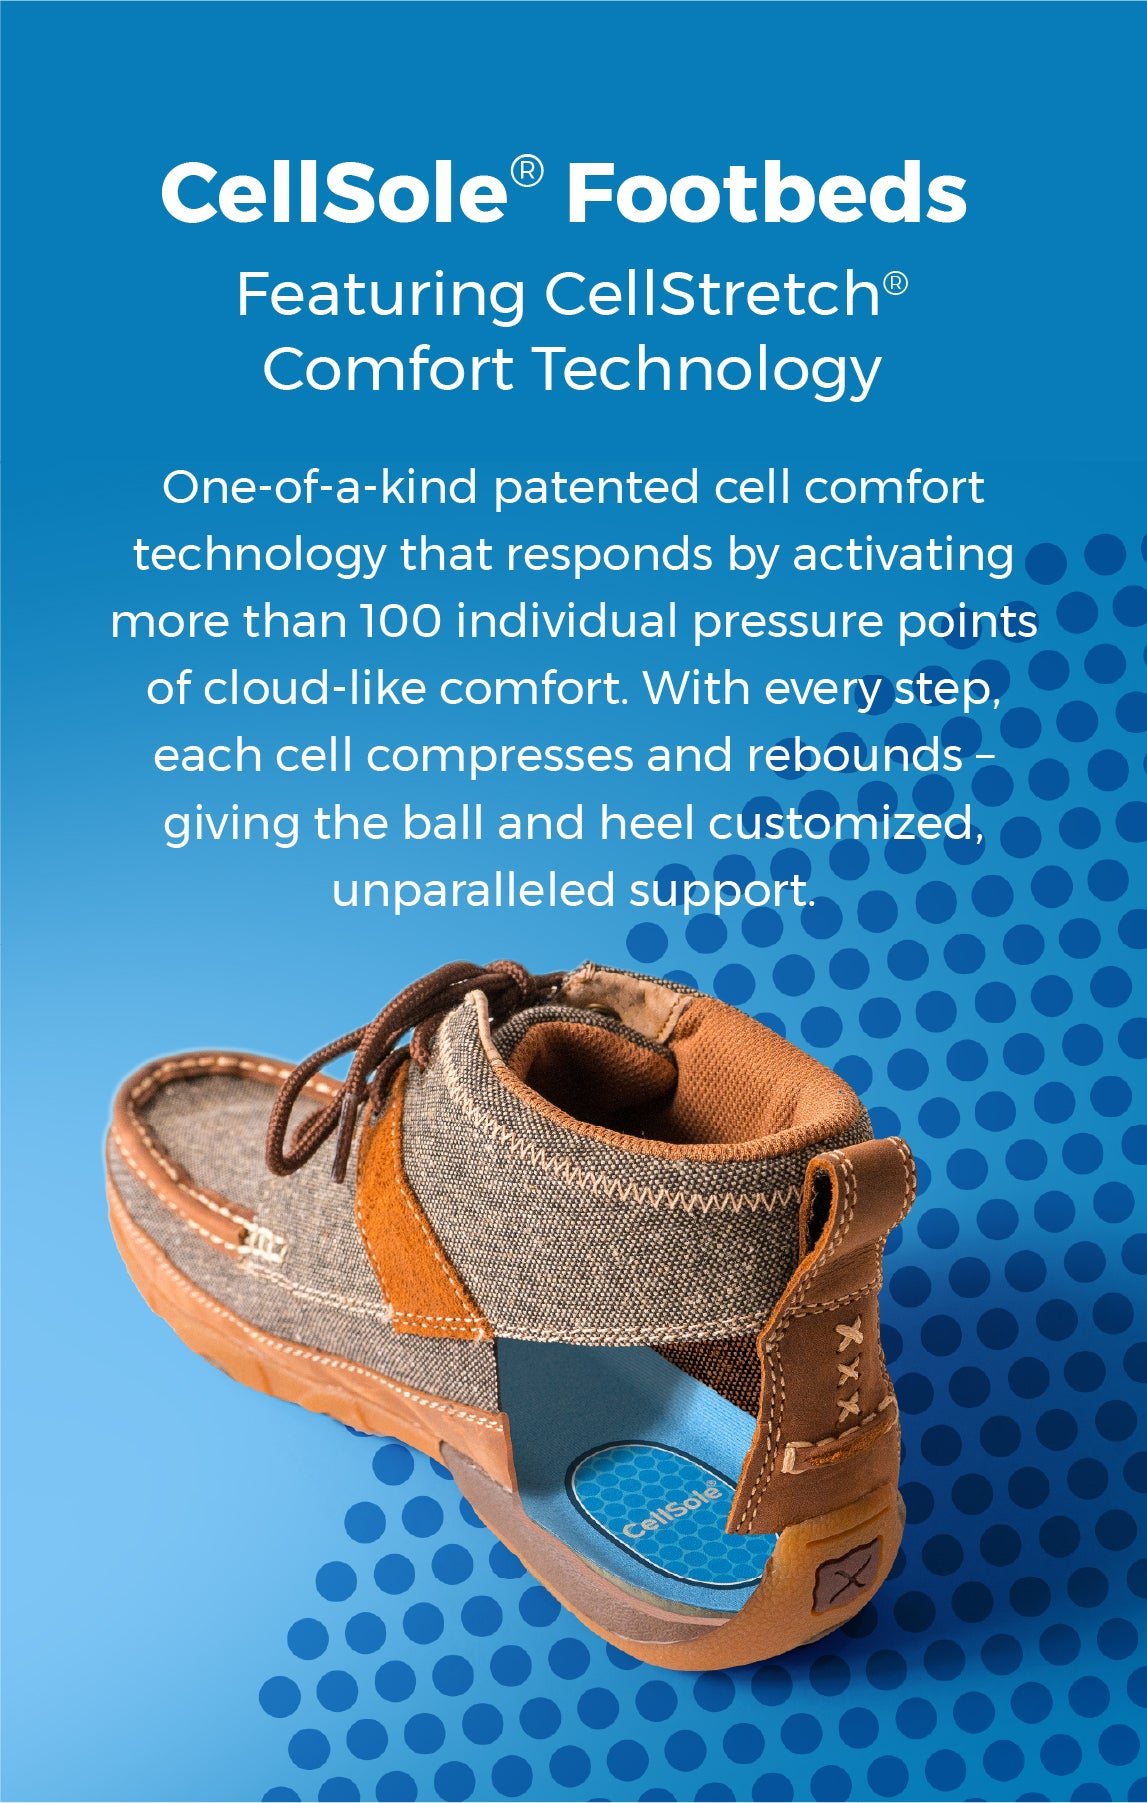 CellSole Footbeds - Featuring CellStretch Comfort Technology - One-of-a-kind patented cell comfort technology that responds by activating more than 100 individual pressure points of cloud-like comfort. With every step, each cell compresses and rebounds